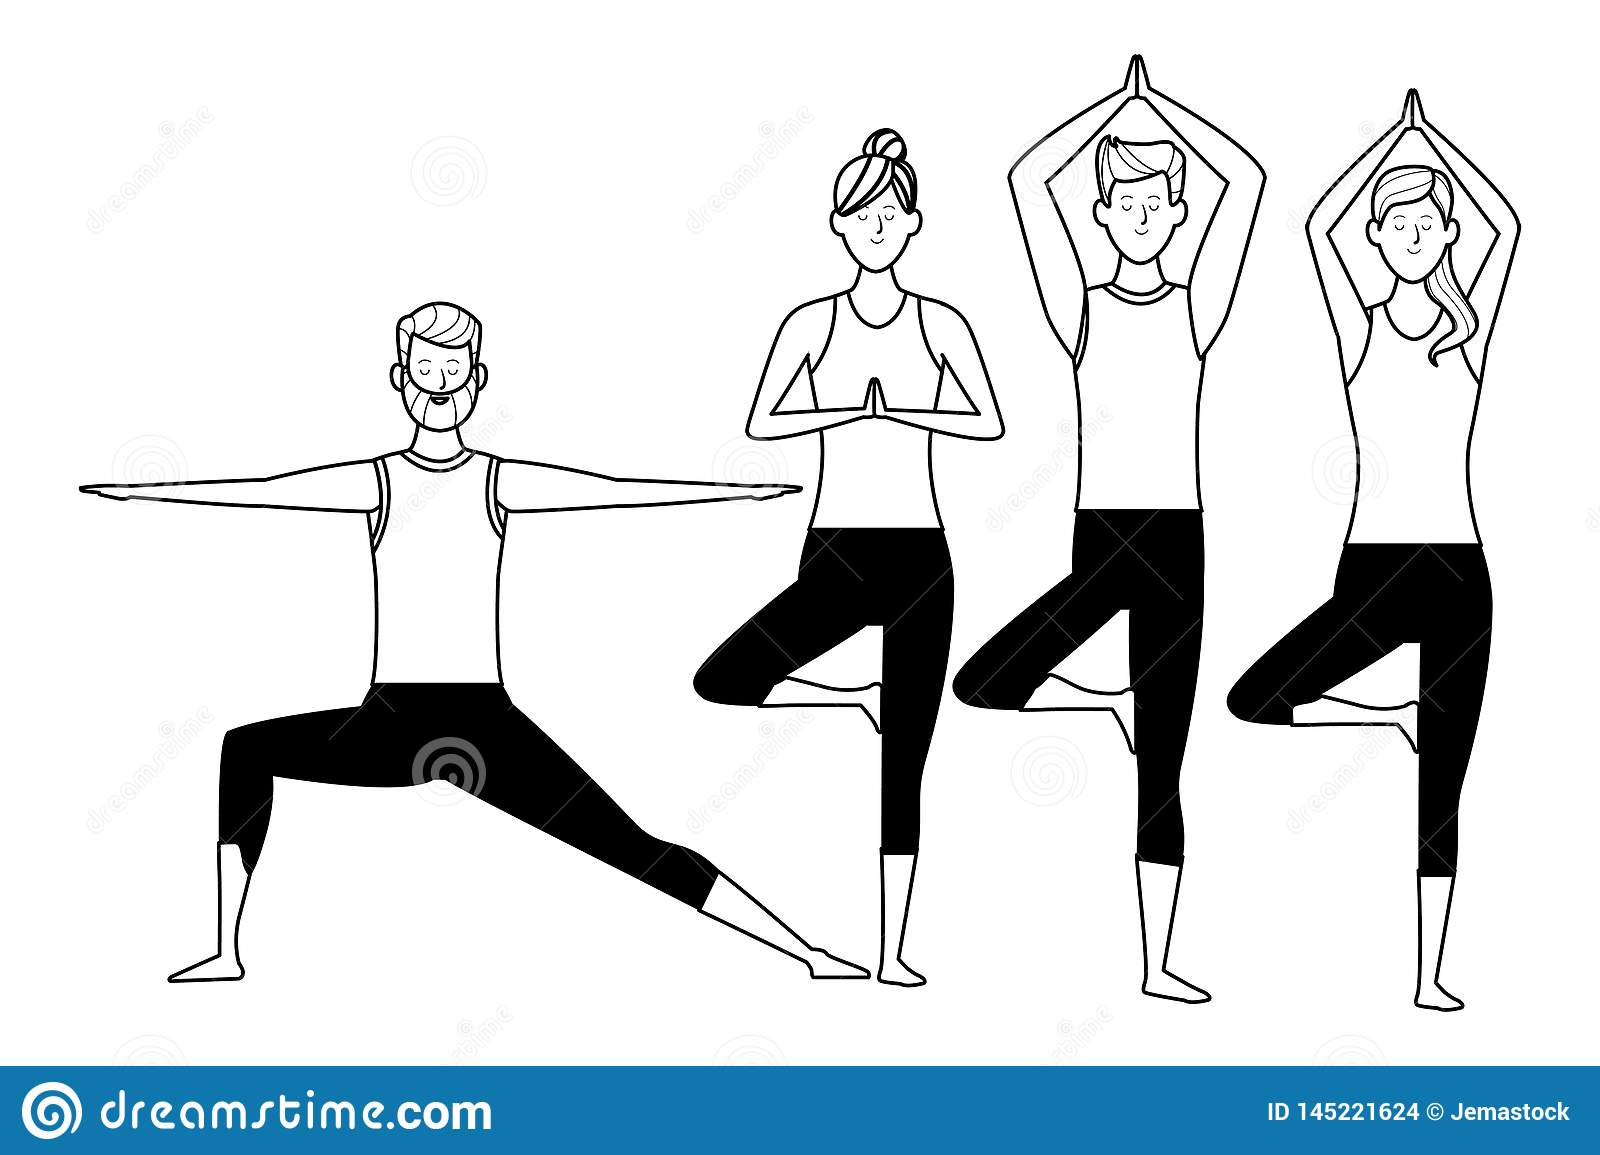 People Yoga Poses Black And White Stock Vector - Illustration of